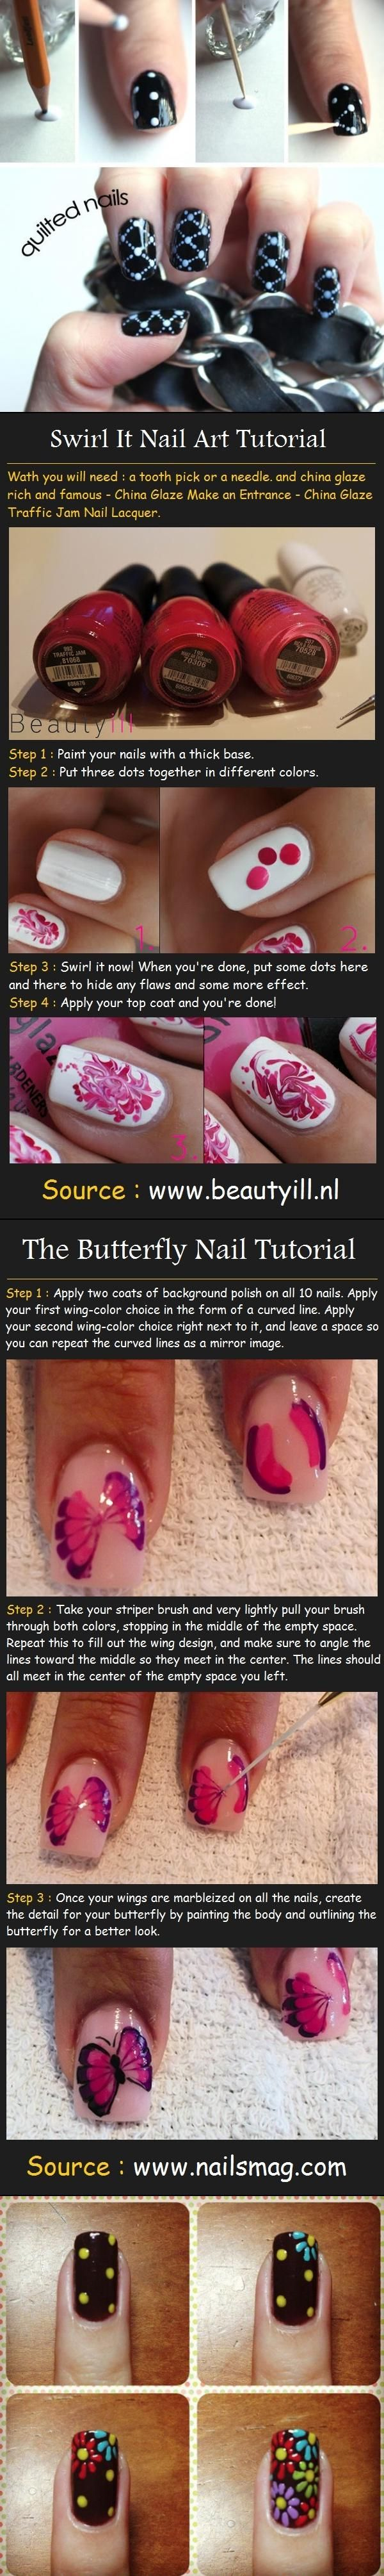 Lots of Nail Art Designs I love!!! <3<3<3 These are for the beginner with no special tools needed!